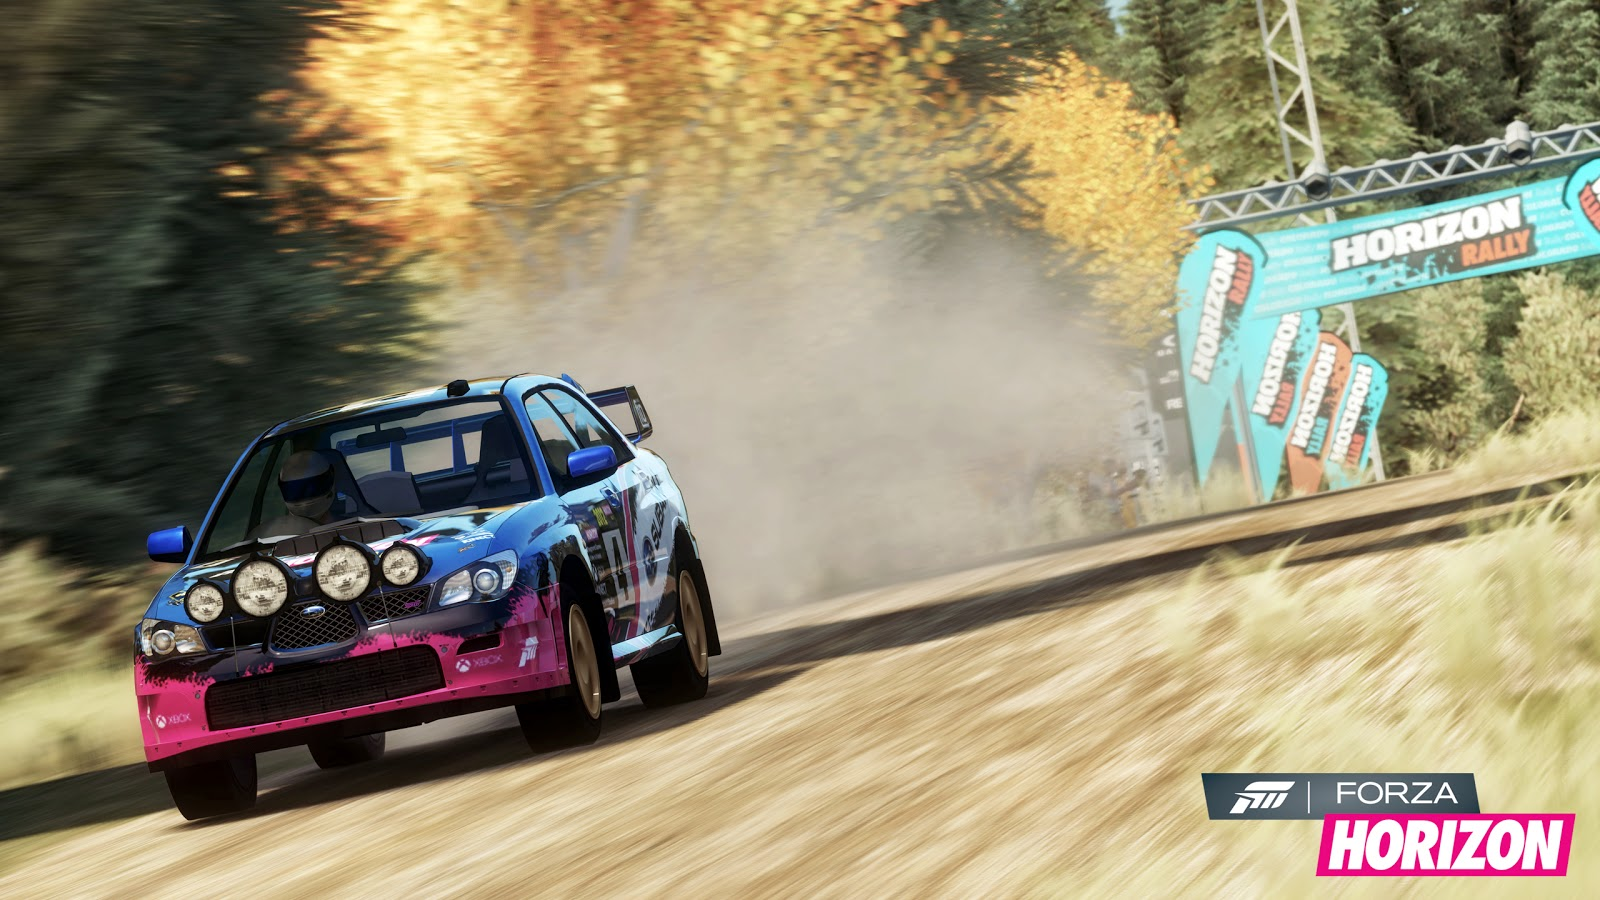 Forza Horizon HD & Widescreen Wallpaper 0.24551187180475